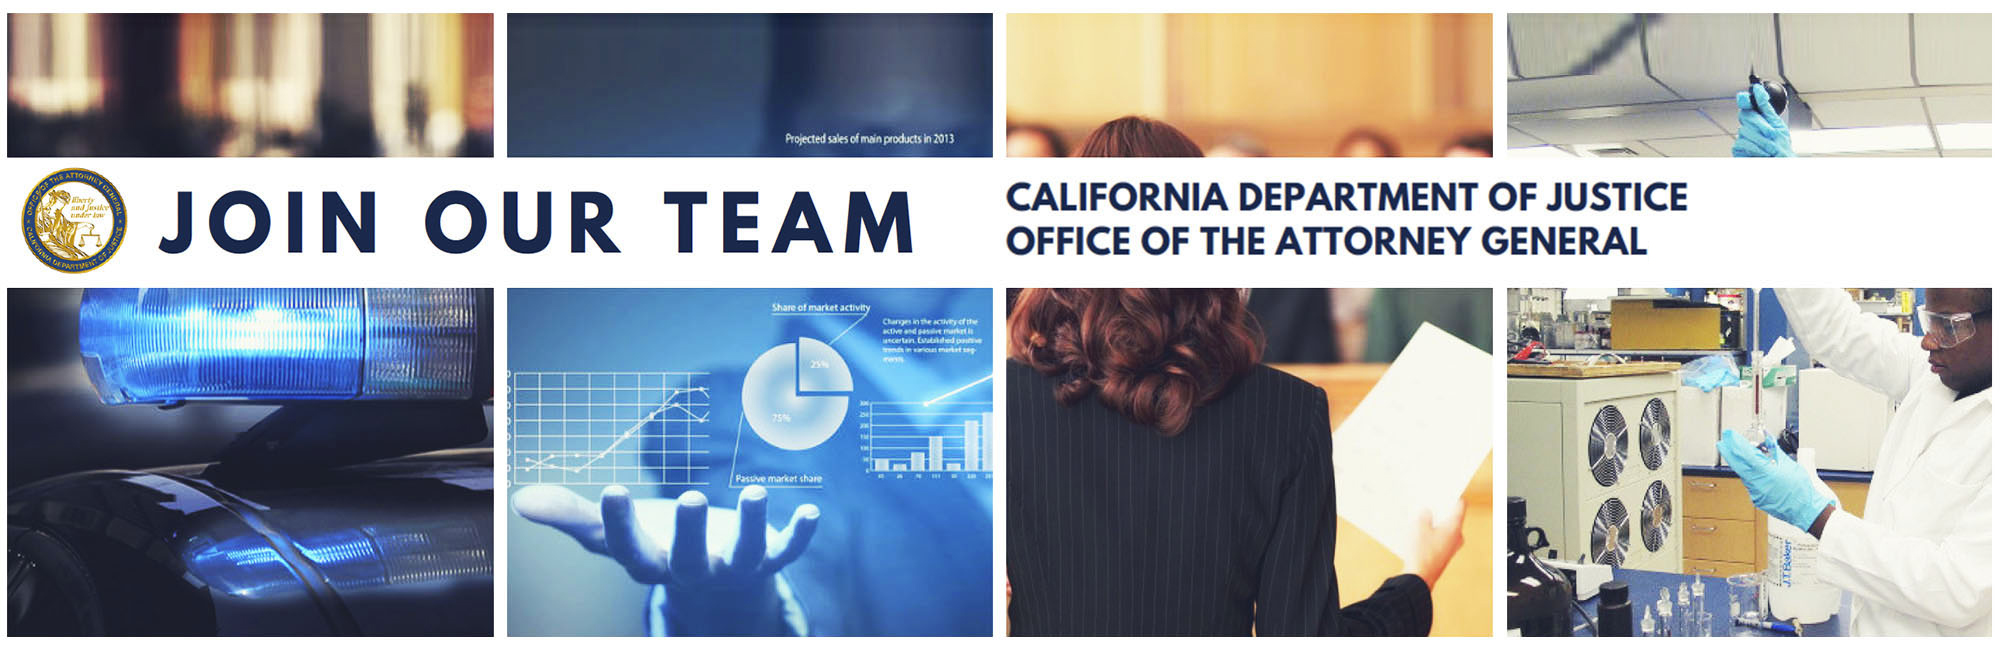 Join our team - California Department of Justice - Office of the Attorney General.